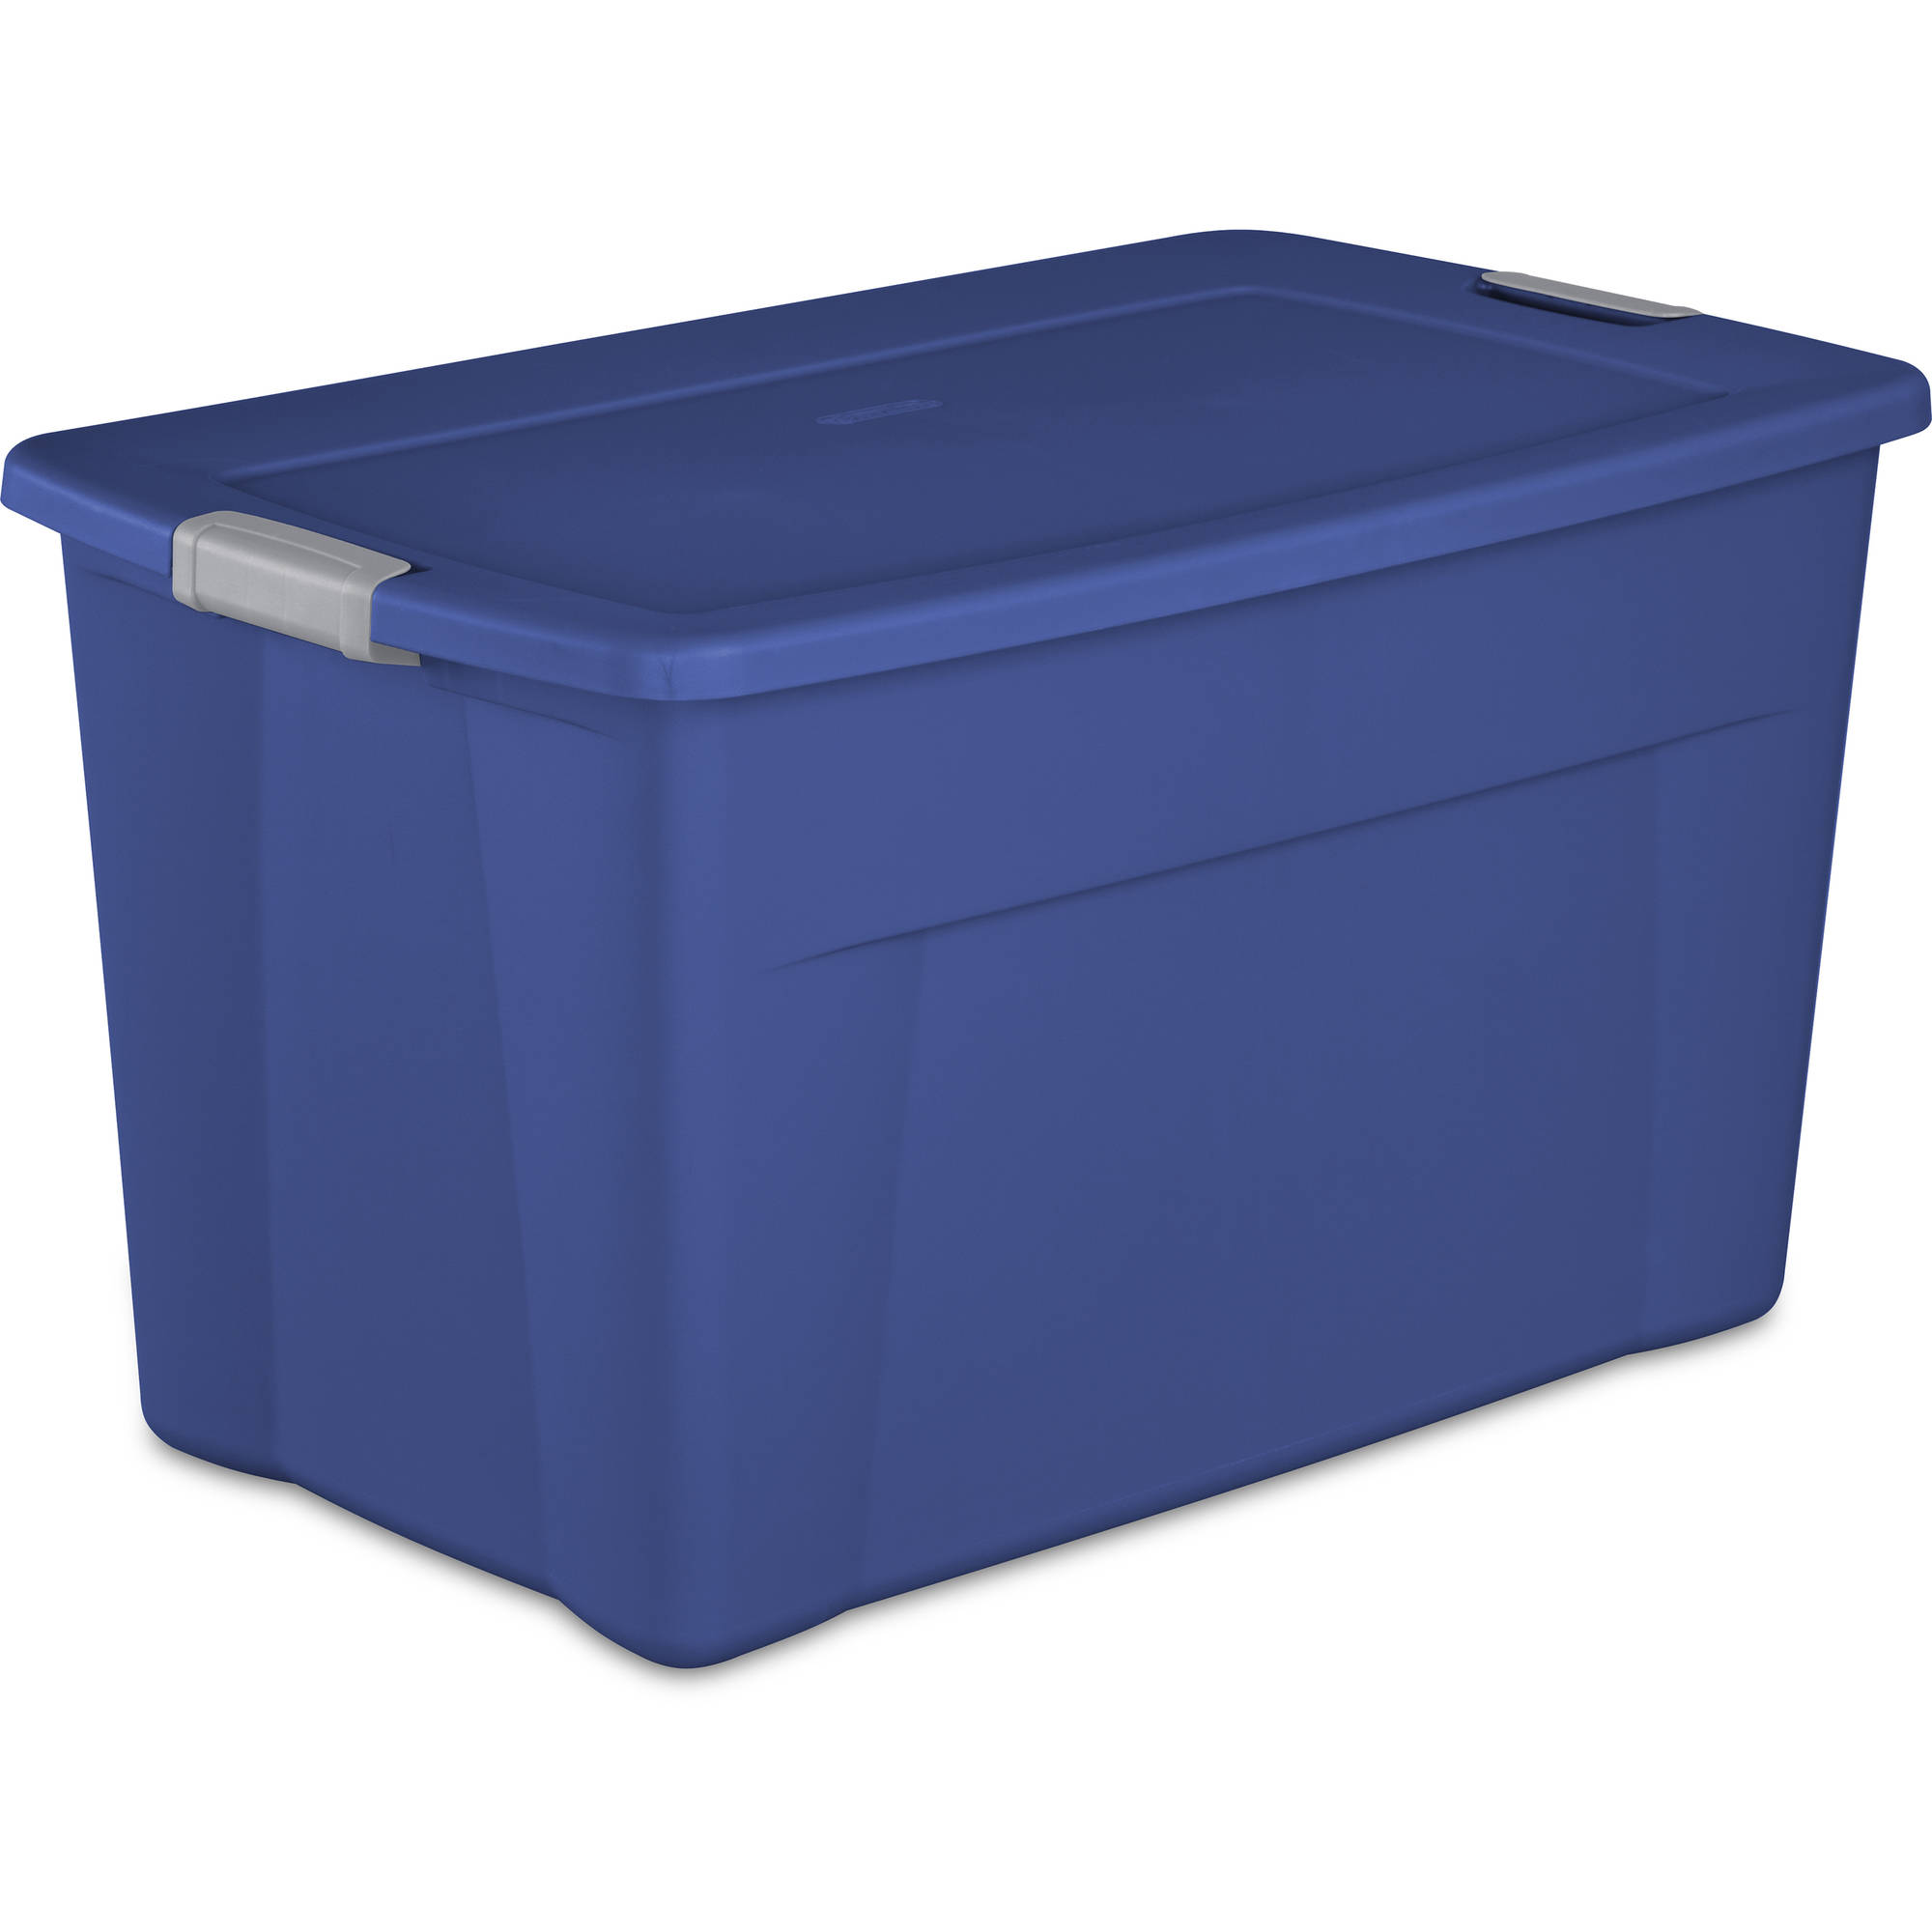 Sterilite 35 Gallon Latch Tote- Stadium Blue, Case of 4